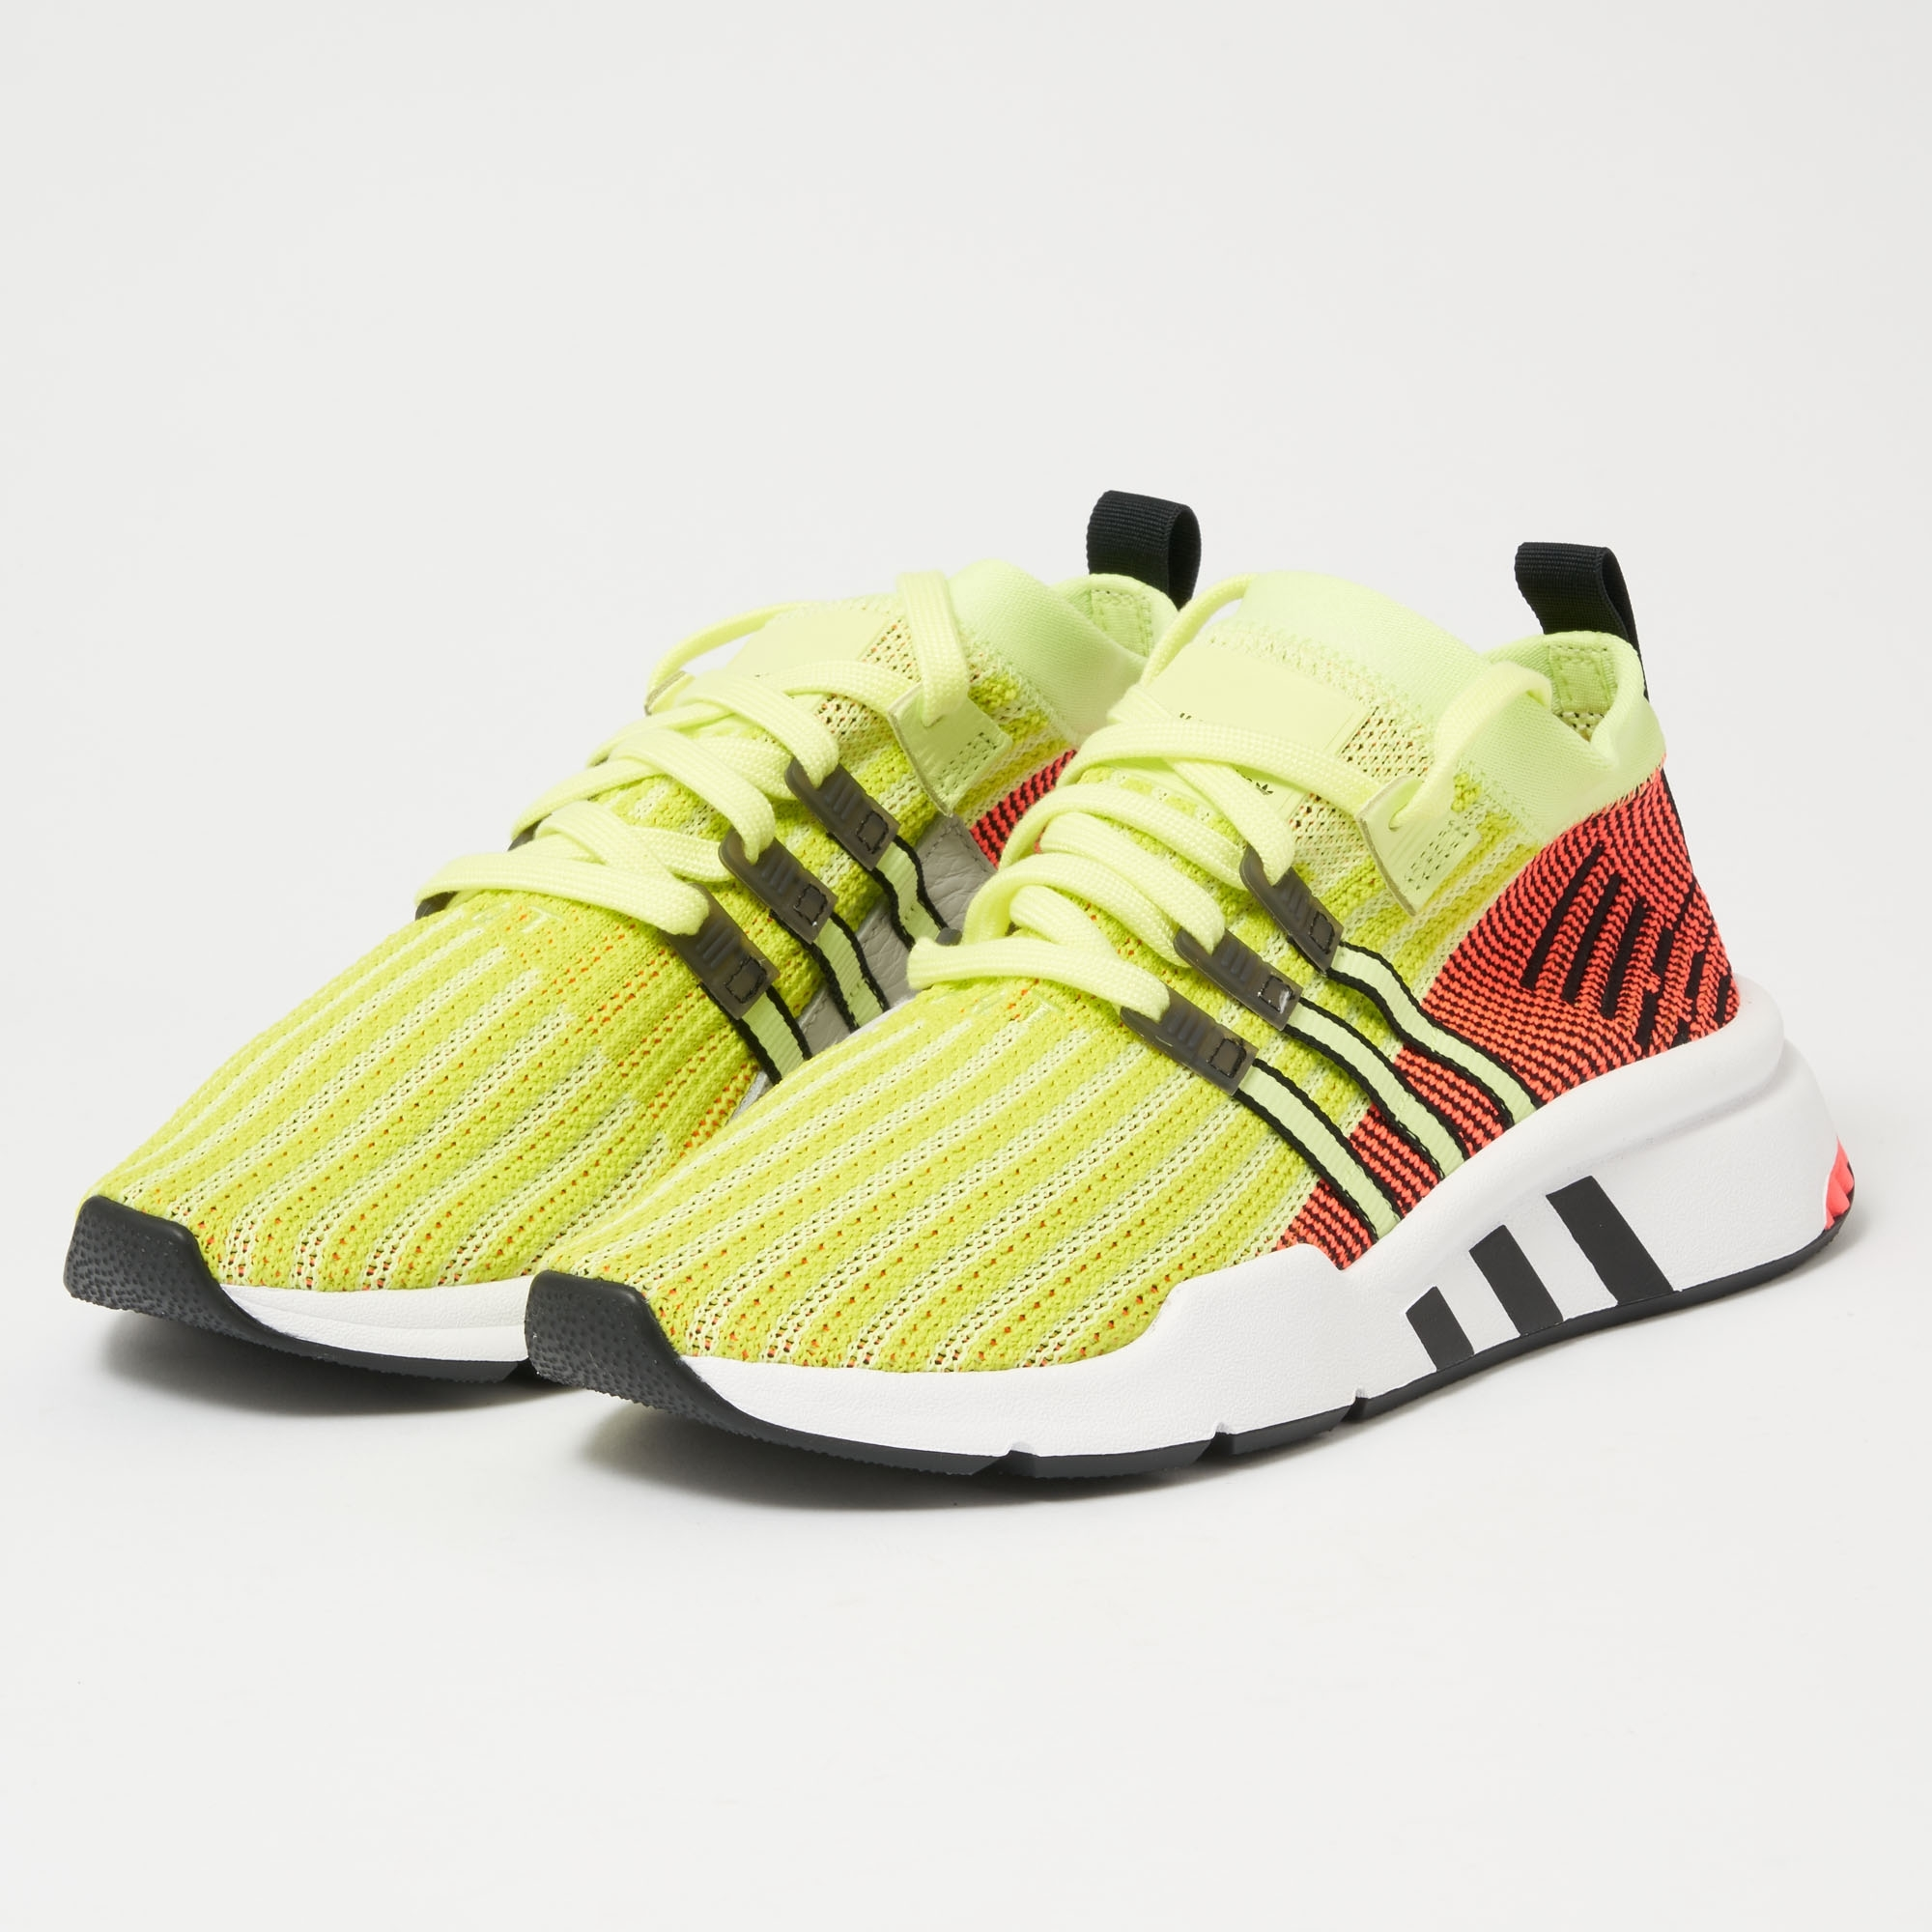 huge selection of 64492 d6316 EQT Support Mid ADV Primeknit - Glow, Core Black & Turbo